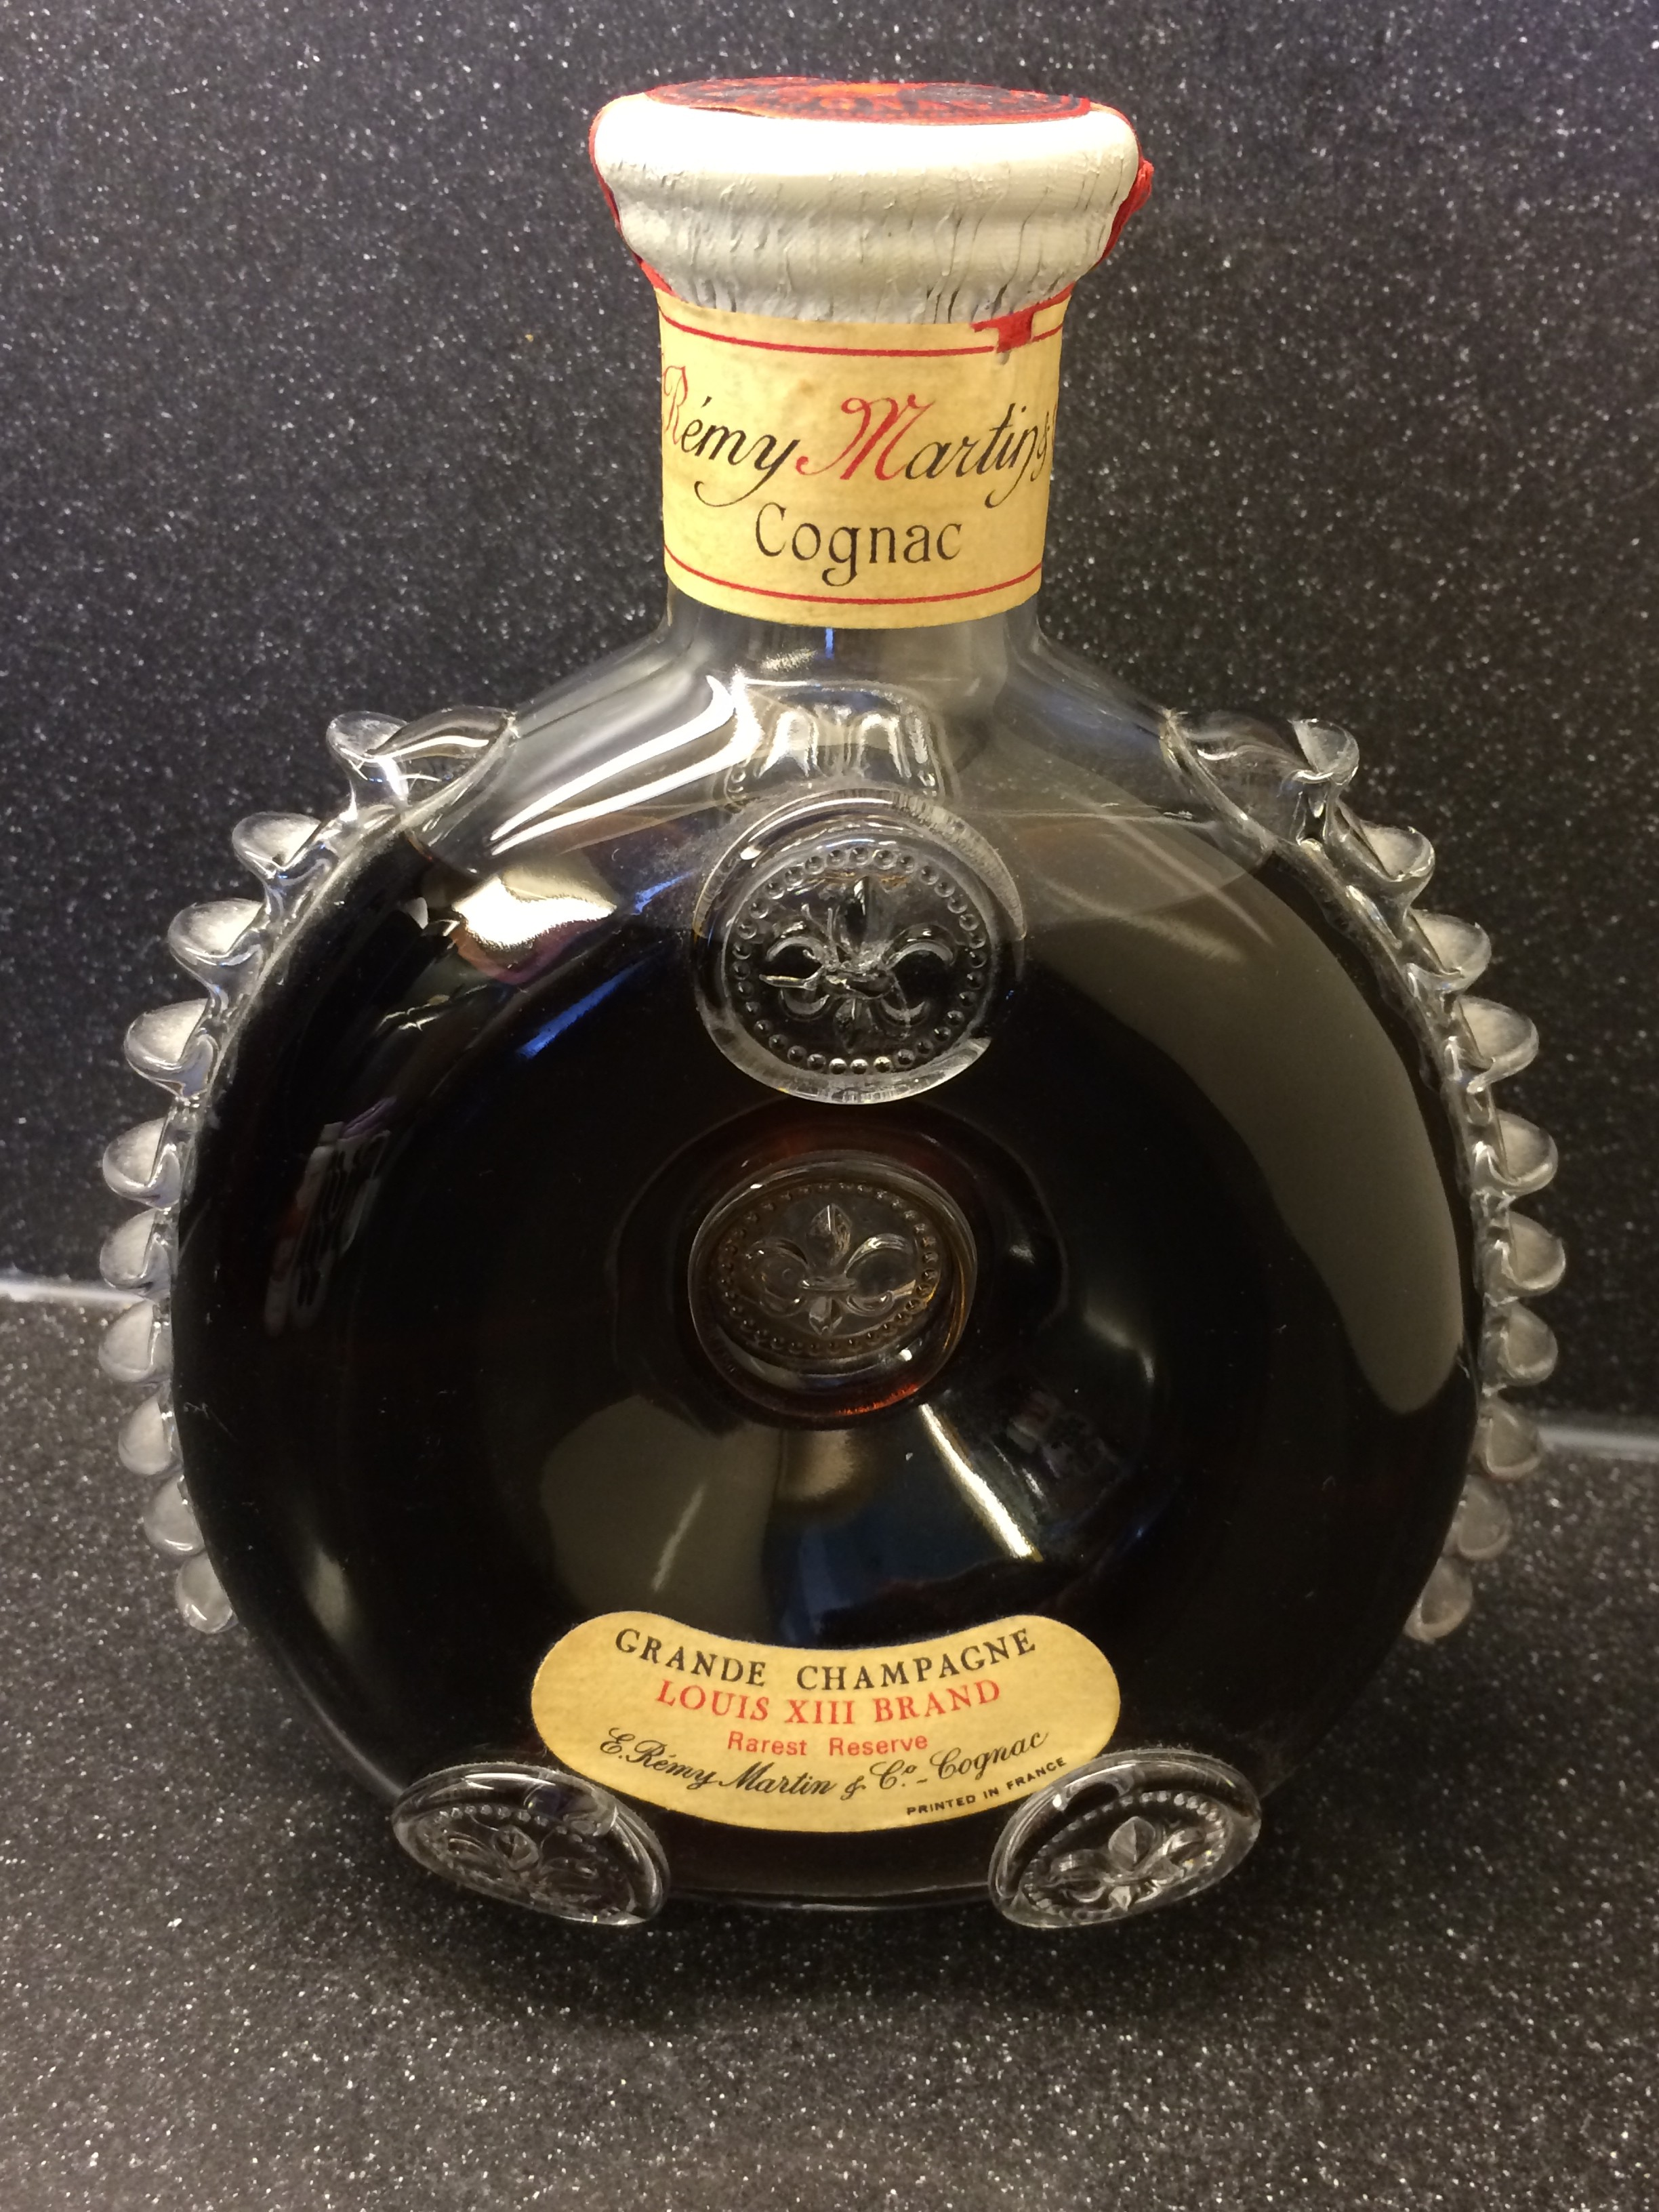 Remy Martin Louis XIII Cognac & Cigars: A match made in heaven?